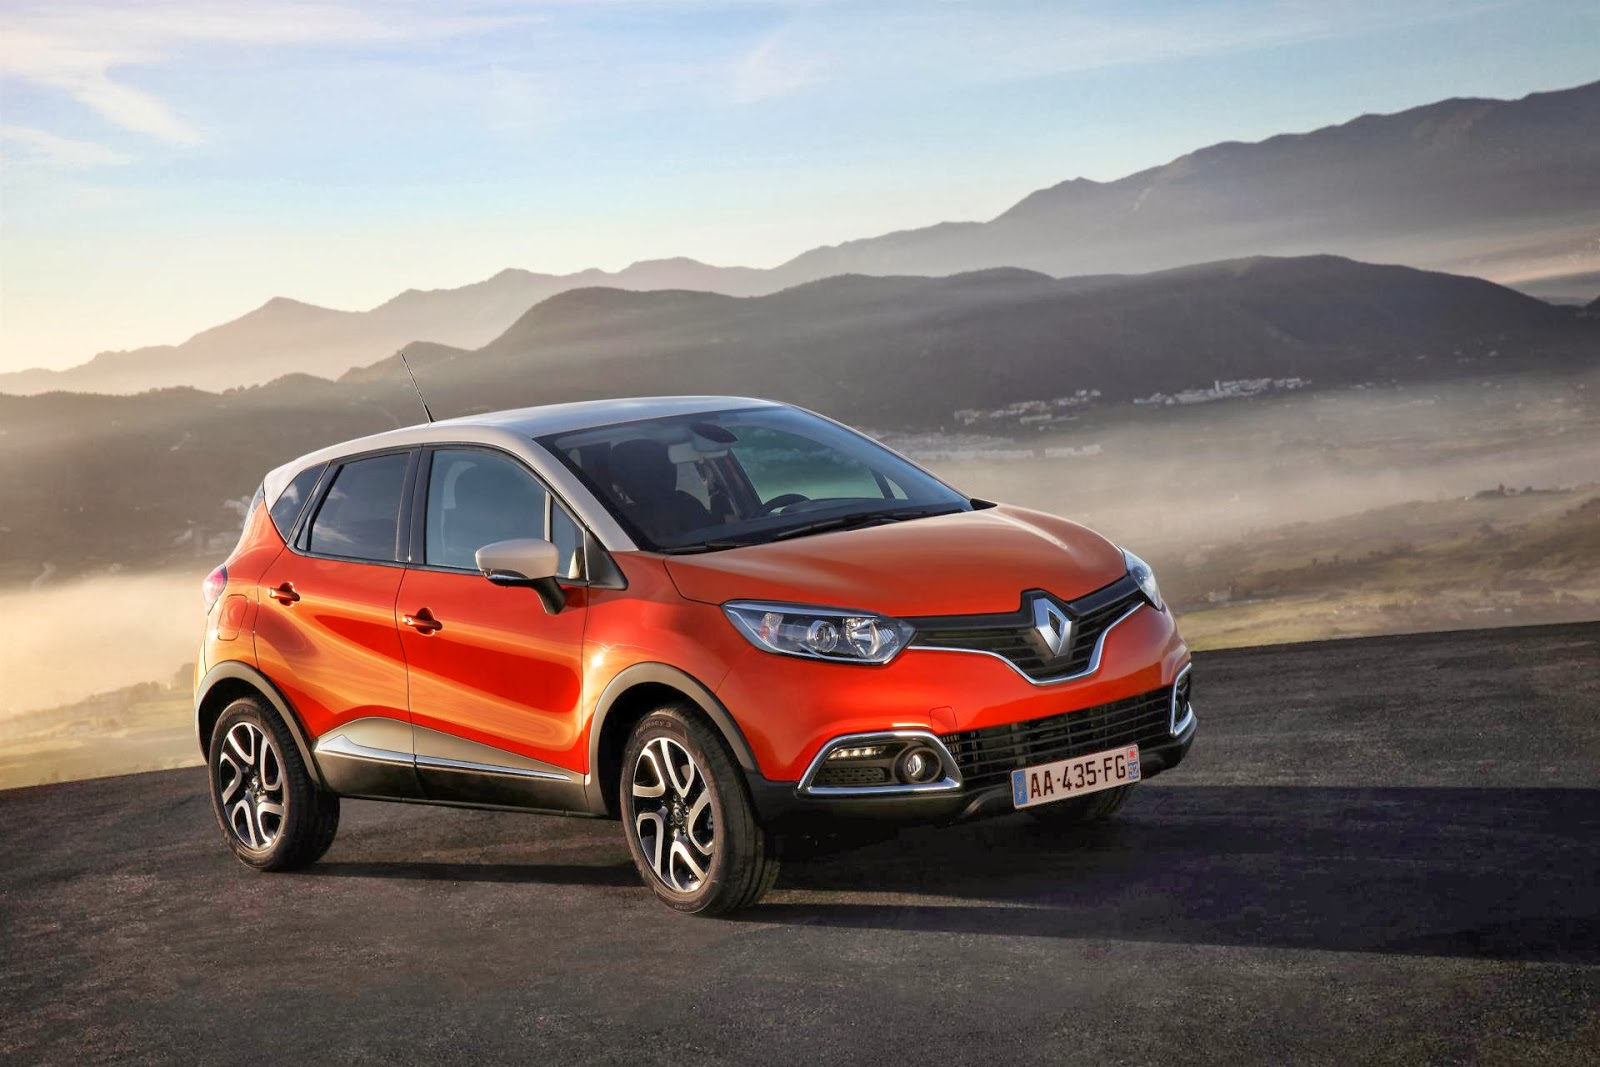 renault captur 2014 hottest car wallpapers bestgarage. Black Bedroom Furniture Sets. Home Design Ideas